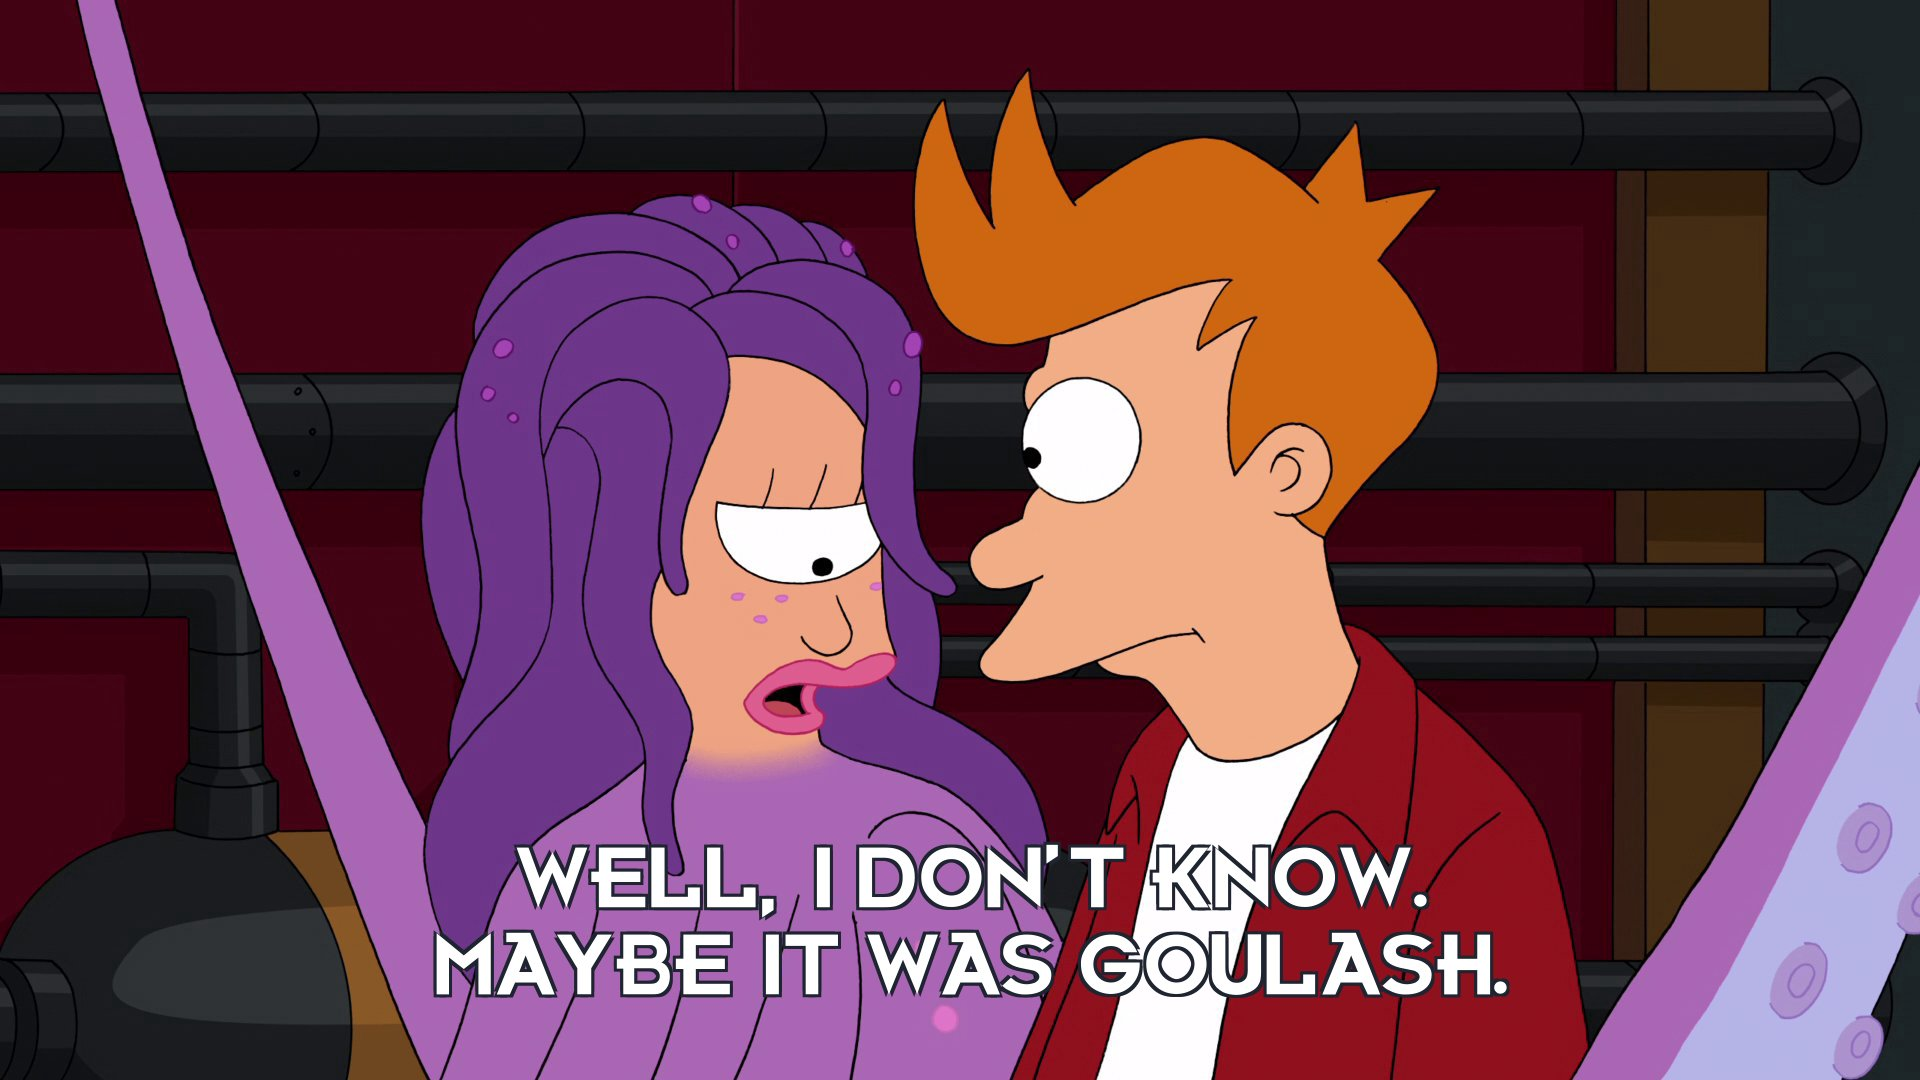 Turanga Leela: Well, I don't know. Maybe it was goulash.